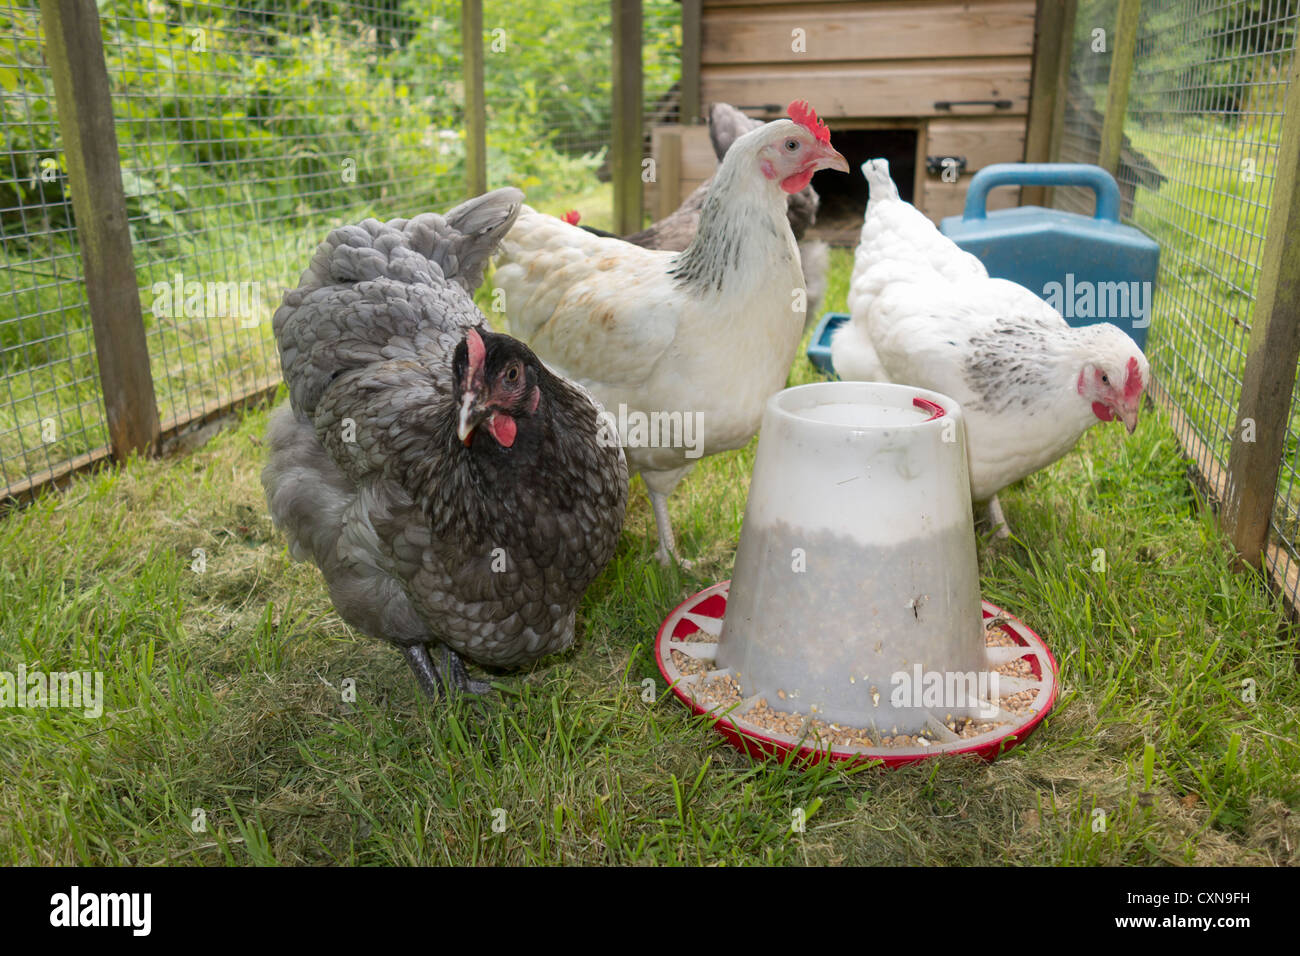 Keeping hens at home - UK. Hens in a run with feeder. - Stock Image